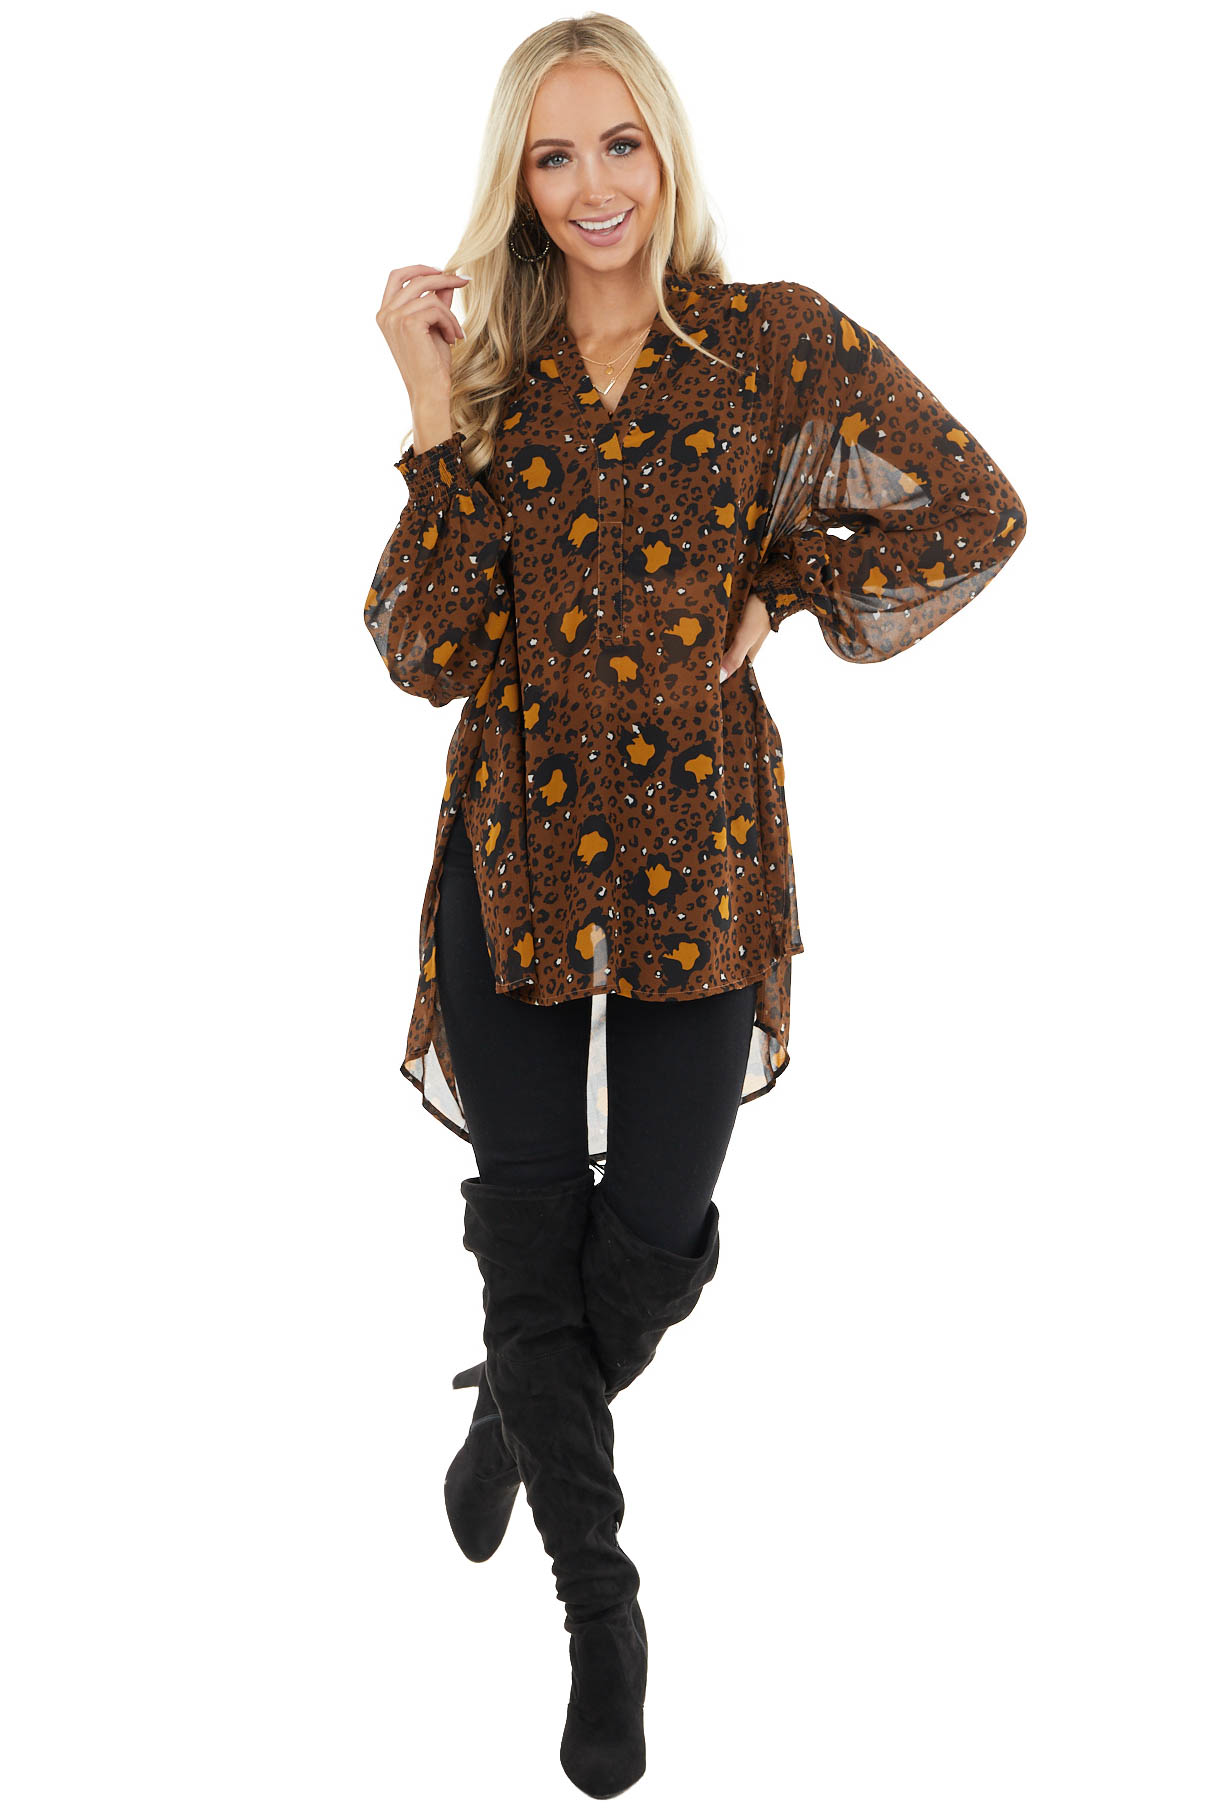 Cognac Leopard Print Oversized Tunic Top with Side Slits